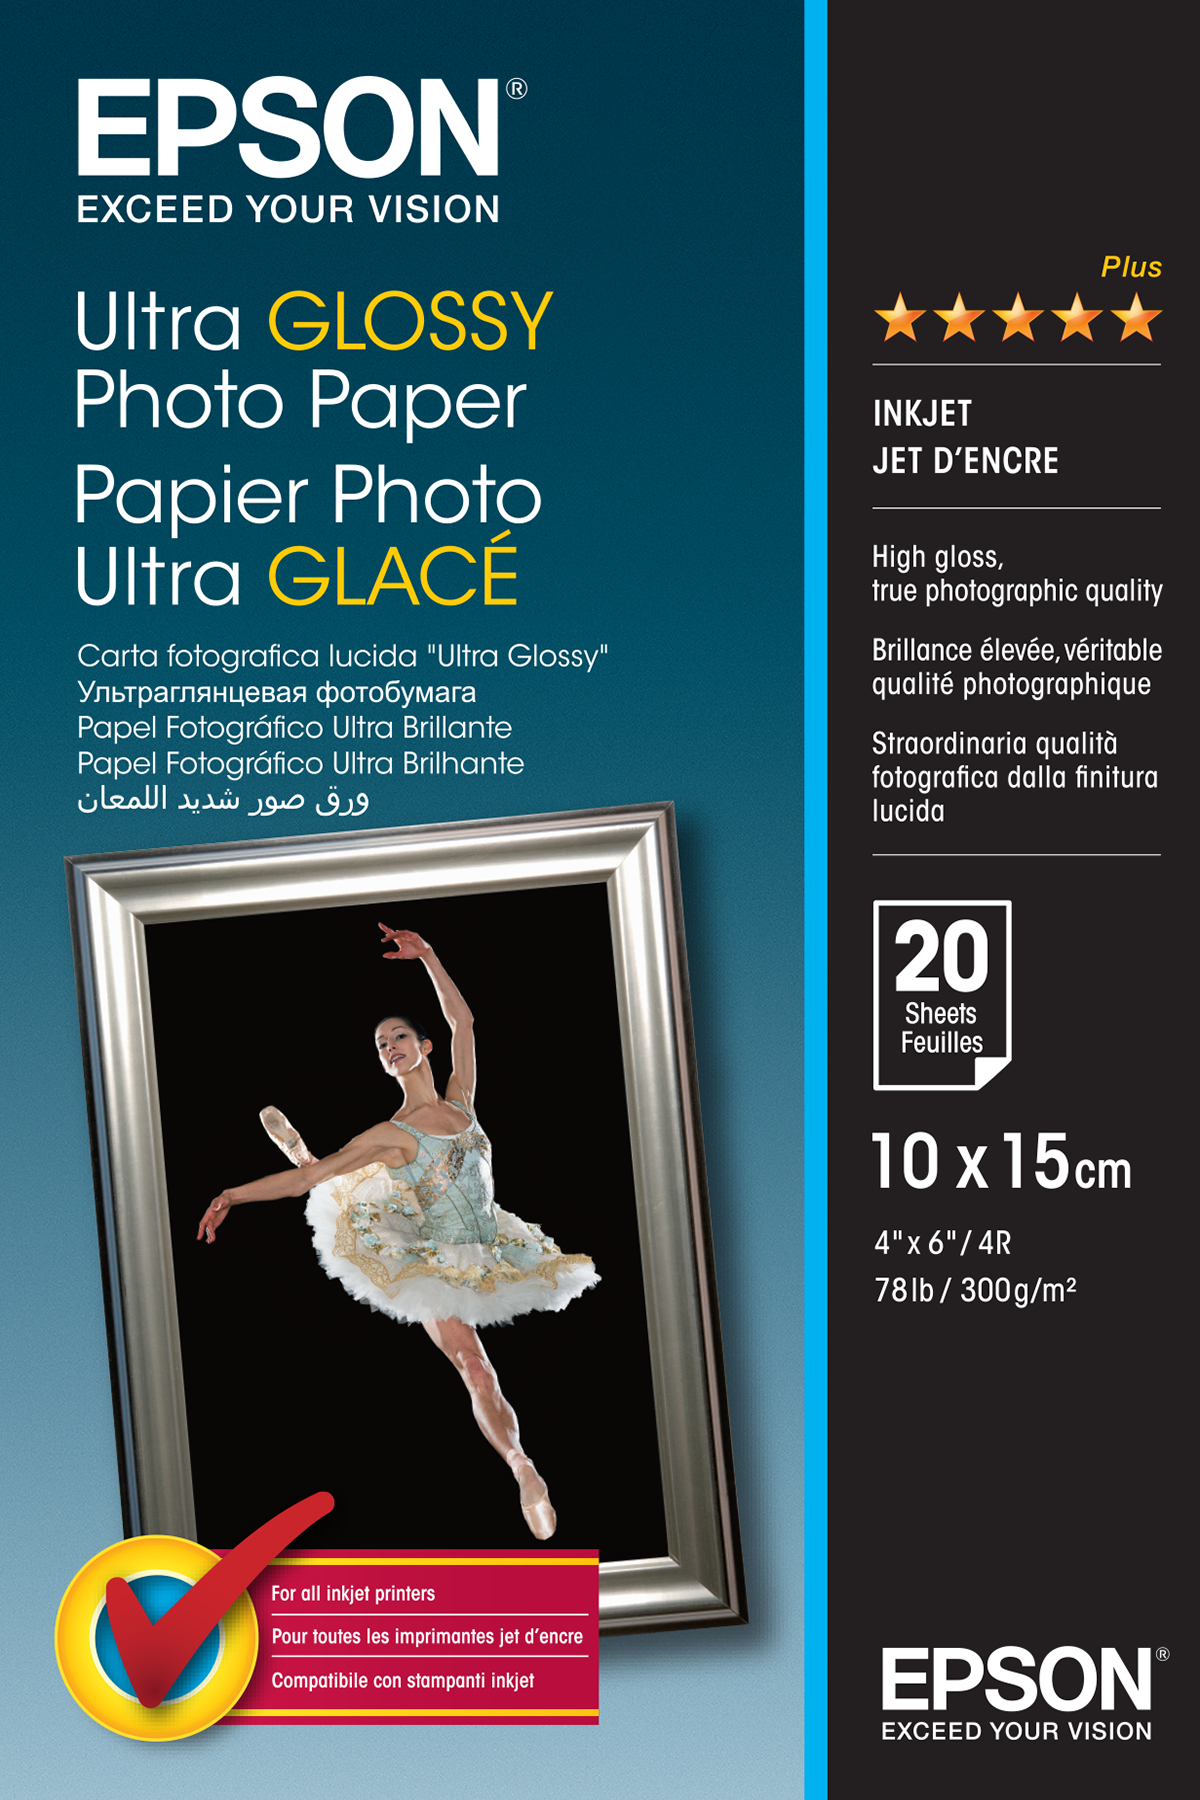 Ultra Glossy Photo Paper 10x15cm 20s C13s041926 - WC01